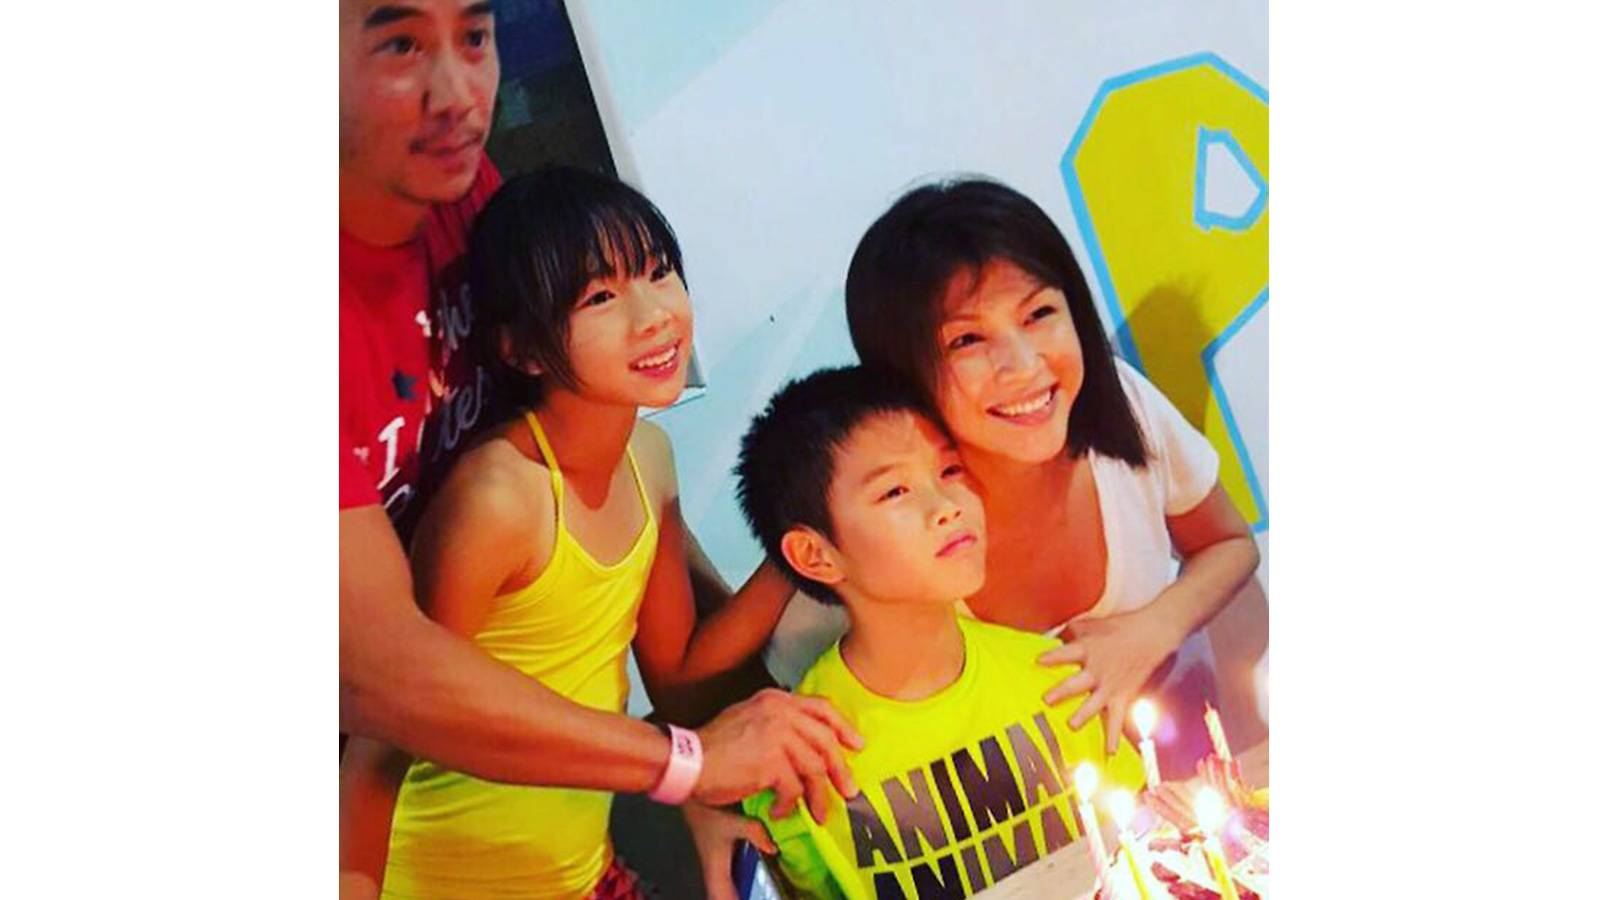 Parents-Celeb-mum-Wong-Li-Lin-My-divorce-has-changed-me-3